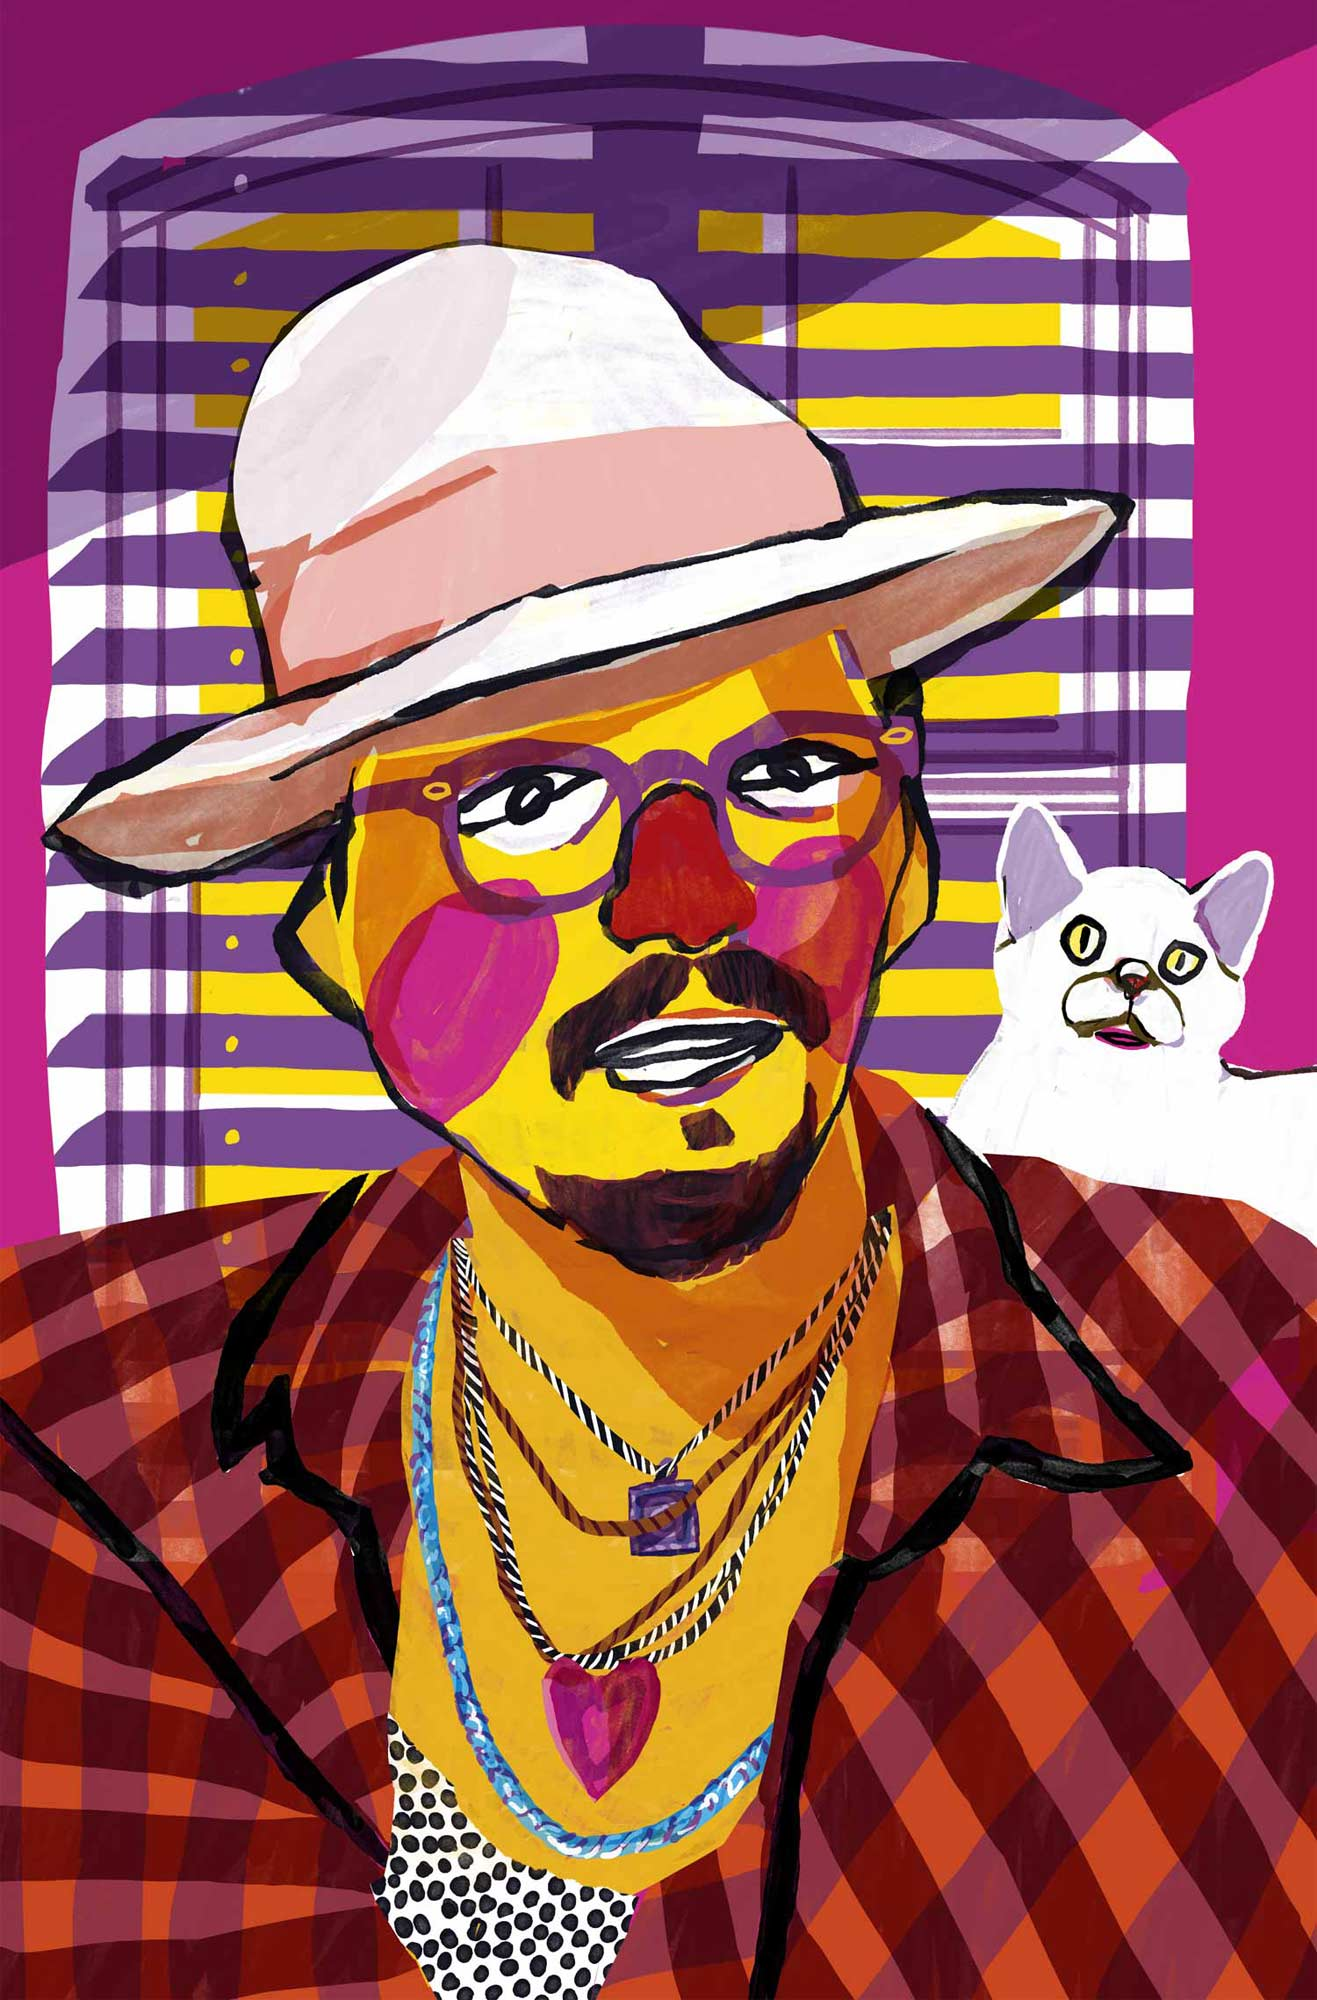 Mario Jodra Art - Johnny Goatee wearing a hat and a cat